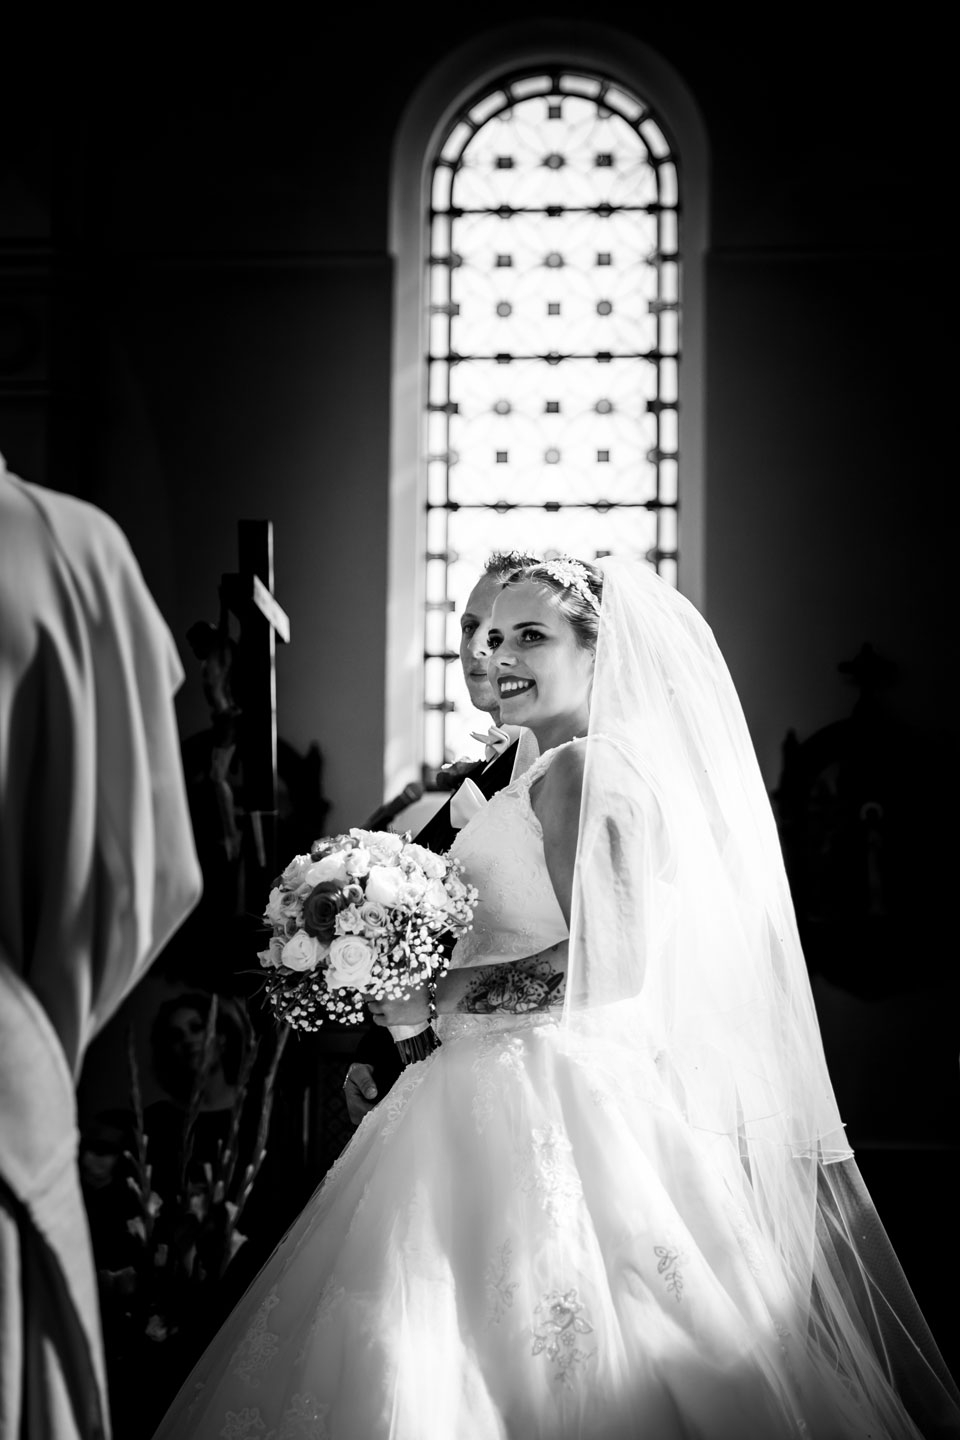 20200912-mariage-ophelie-alexandre-029